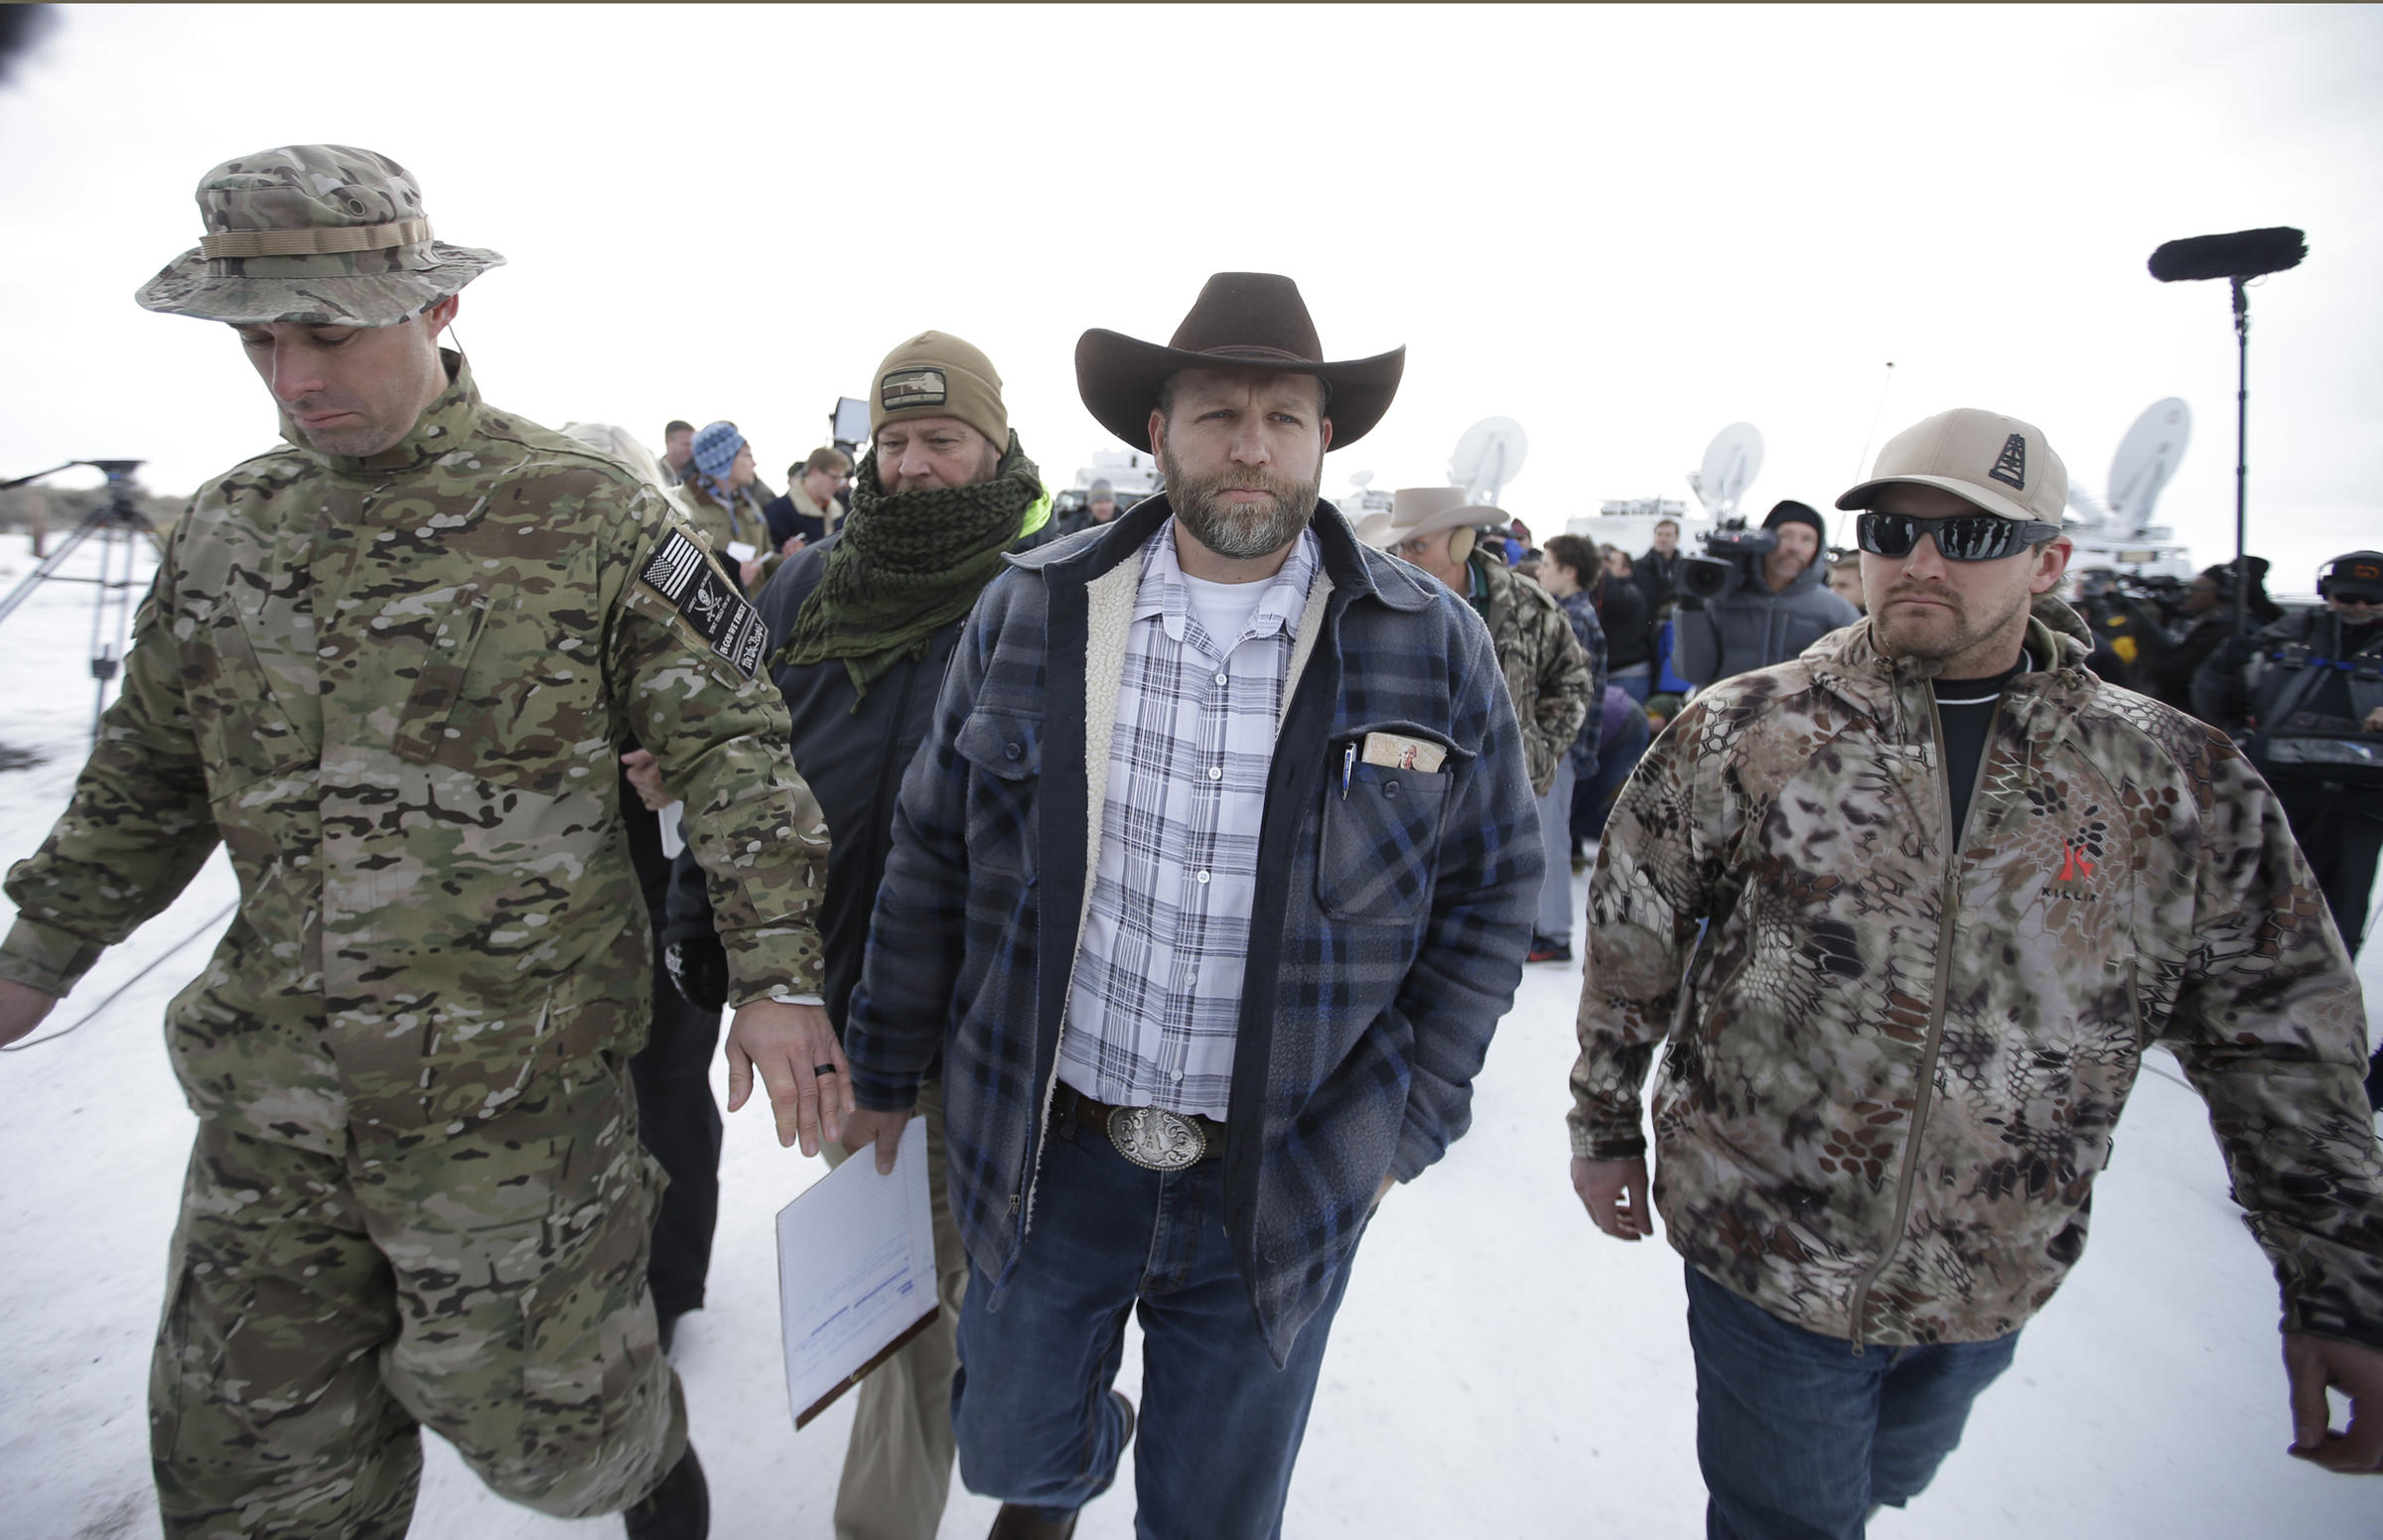 Ammon Bundy, a guy tasked with an incoherant, ahistorical ideology laced with the occassional legitimate grievance.